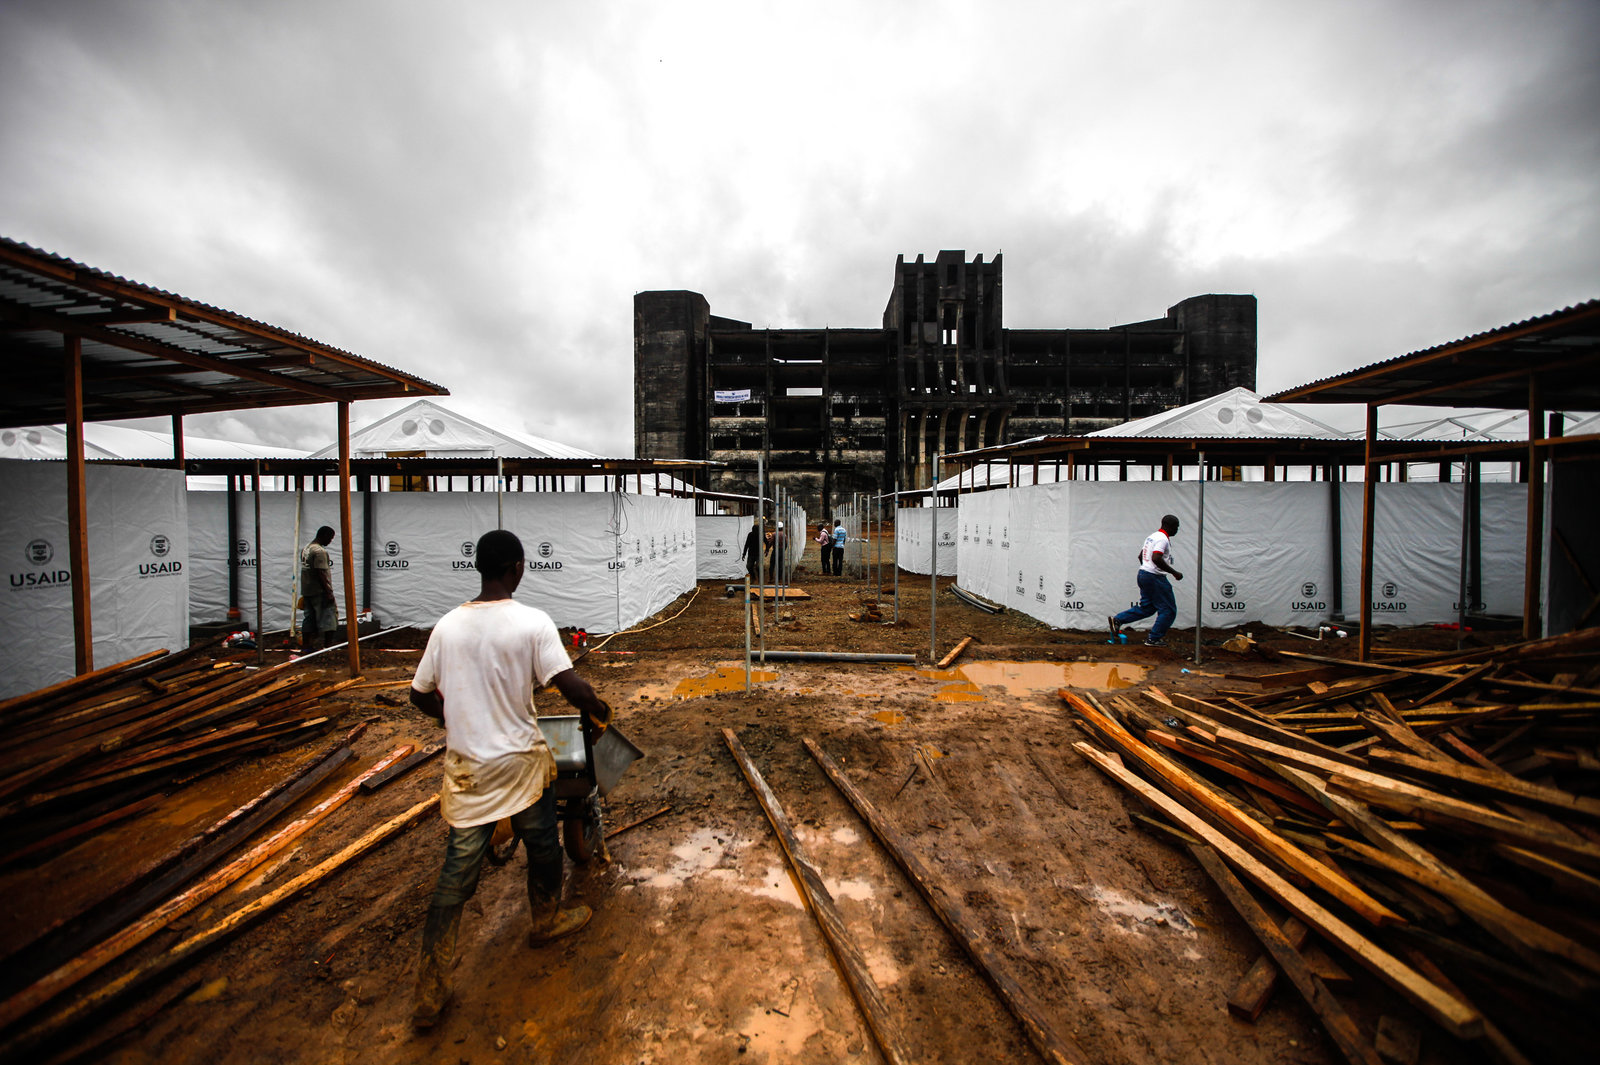 In September, this 300-bed Ebola treatment unit, funded by the U.S., was under construction in Monrovia, Liberia's capital.  John W. Poole/NPR